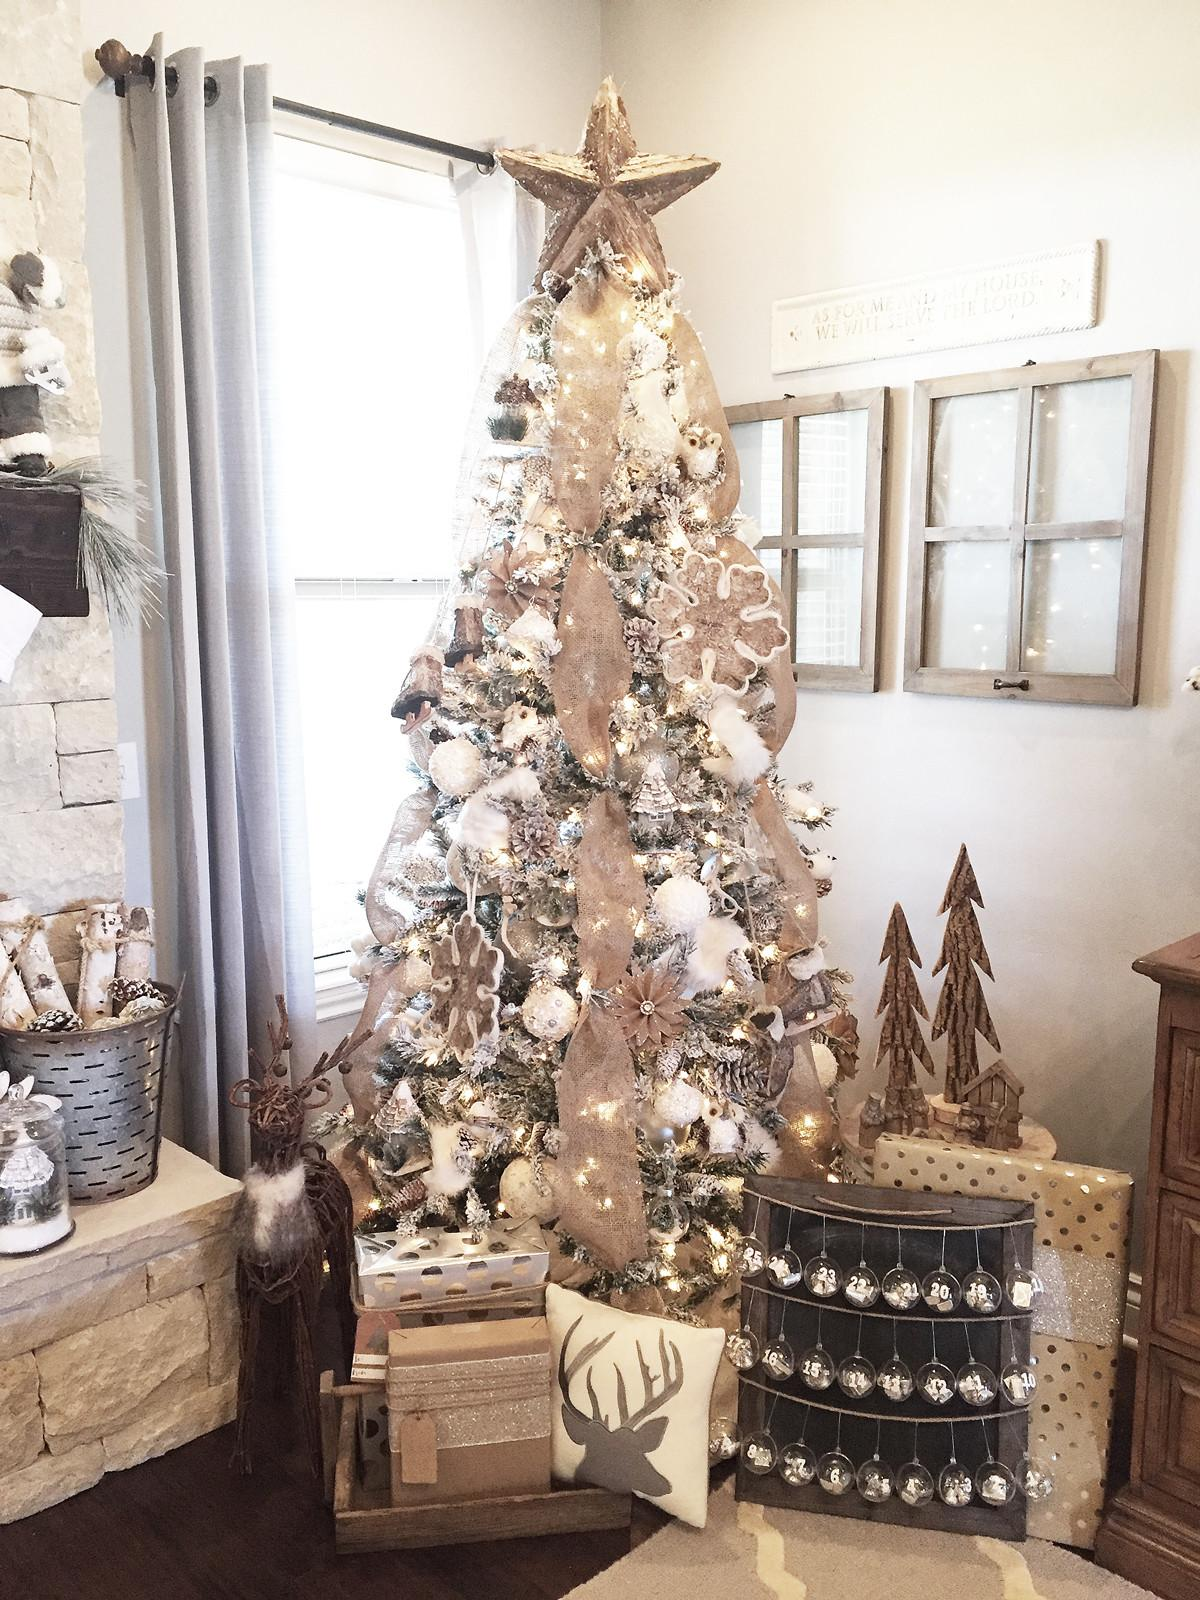 Rustic Christmas Mantel Decor Ideas